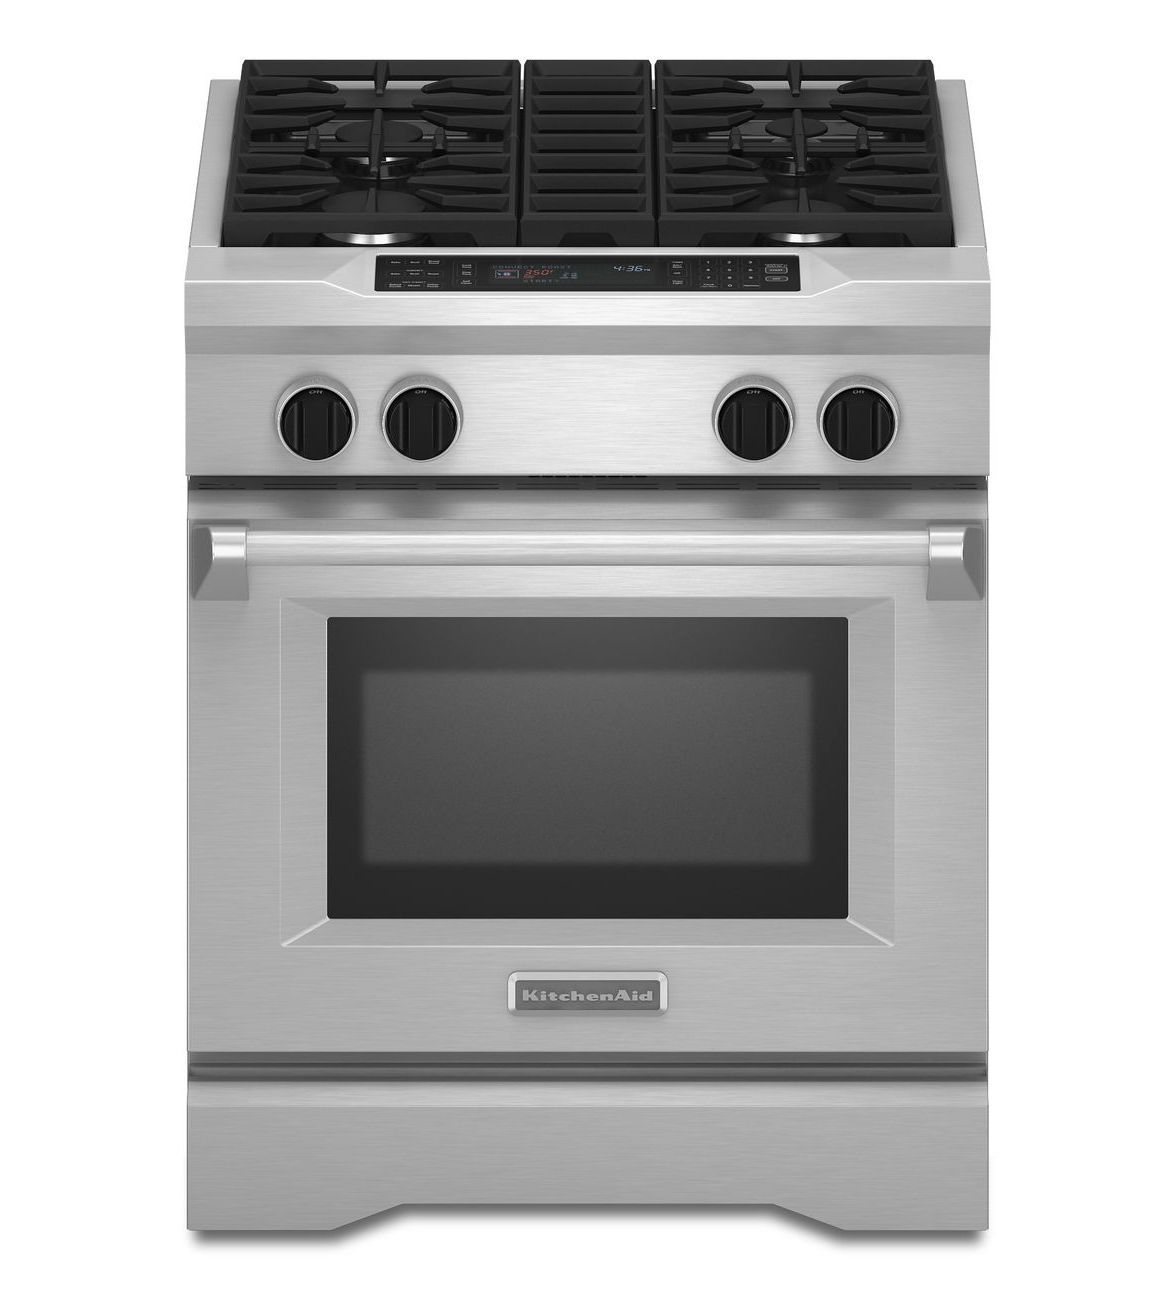 Superior KitchenAid Commercial Style Dual Fuel Range With 4 Sealed Burners, Cu.  Capacity, Ultra Power Dual Flame Burners, Even Heat True Convection System  And ...